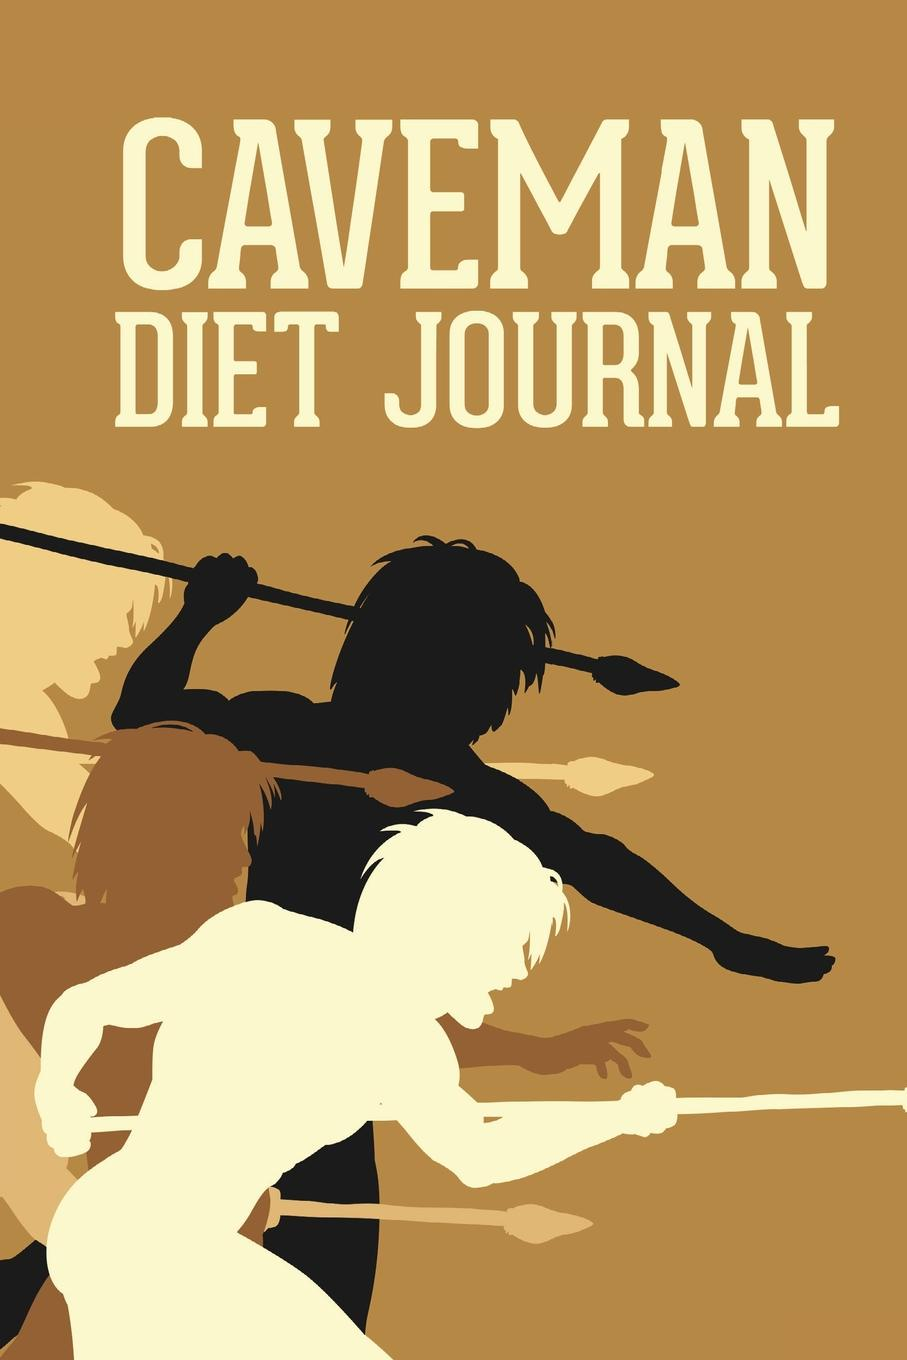 The Blokehead Caveman Diet Journal